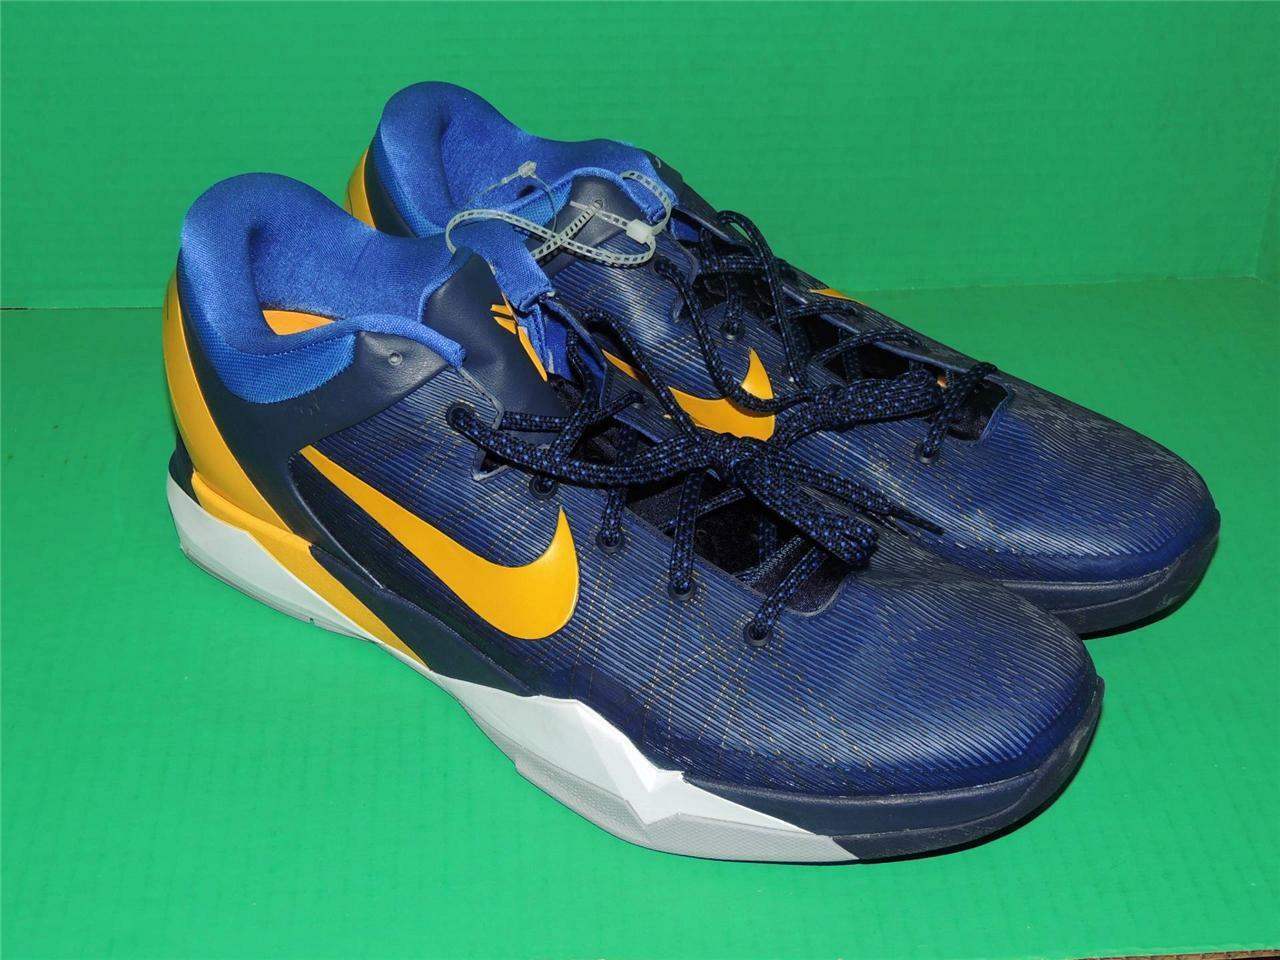 Nike Zoom Kobe VII System 7 Entourage Blue 488371 404  NEW!! New Authentic! RARE  New shoes for men and women, limited time discount